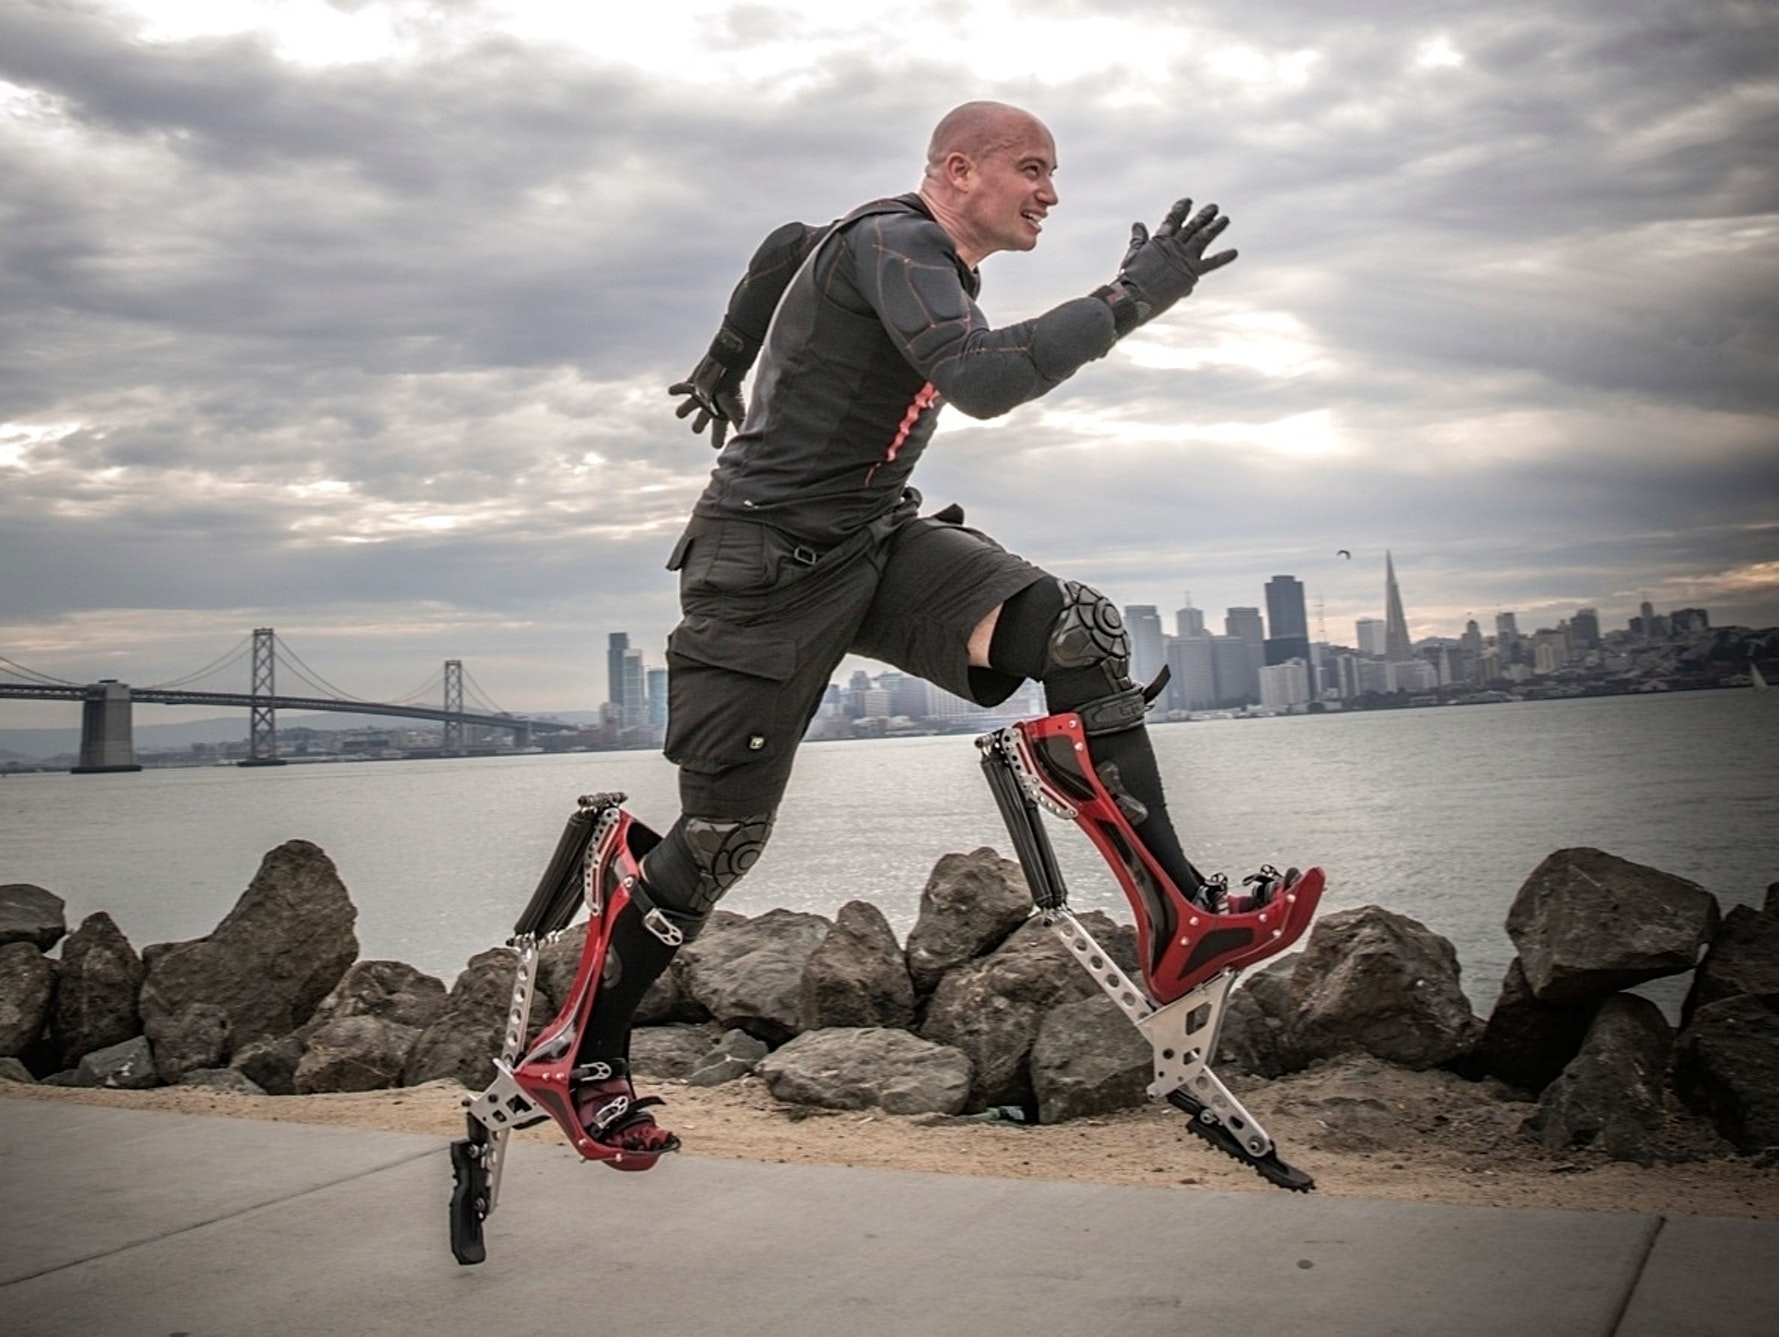 The Bionic Boots worn by Keahi Seymour, inventor.